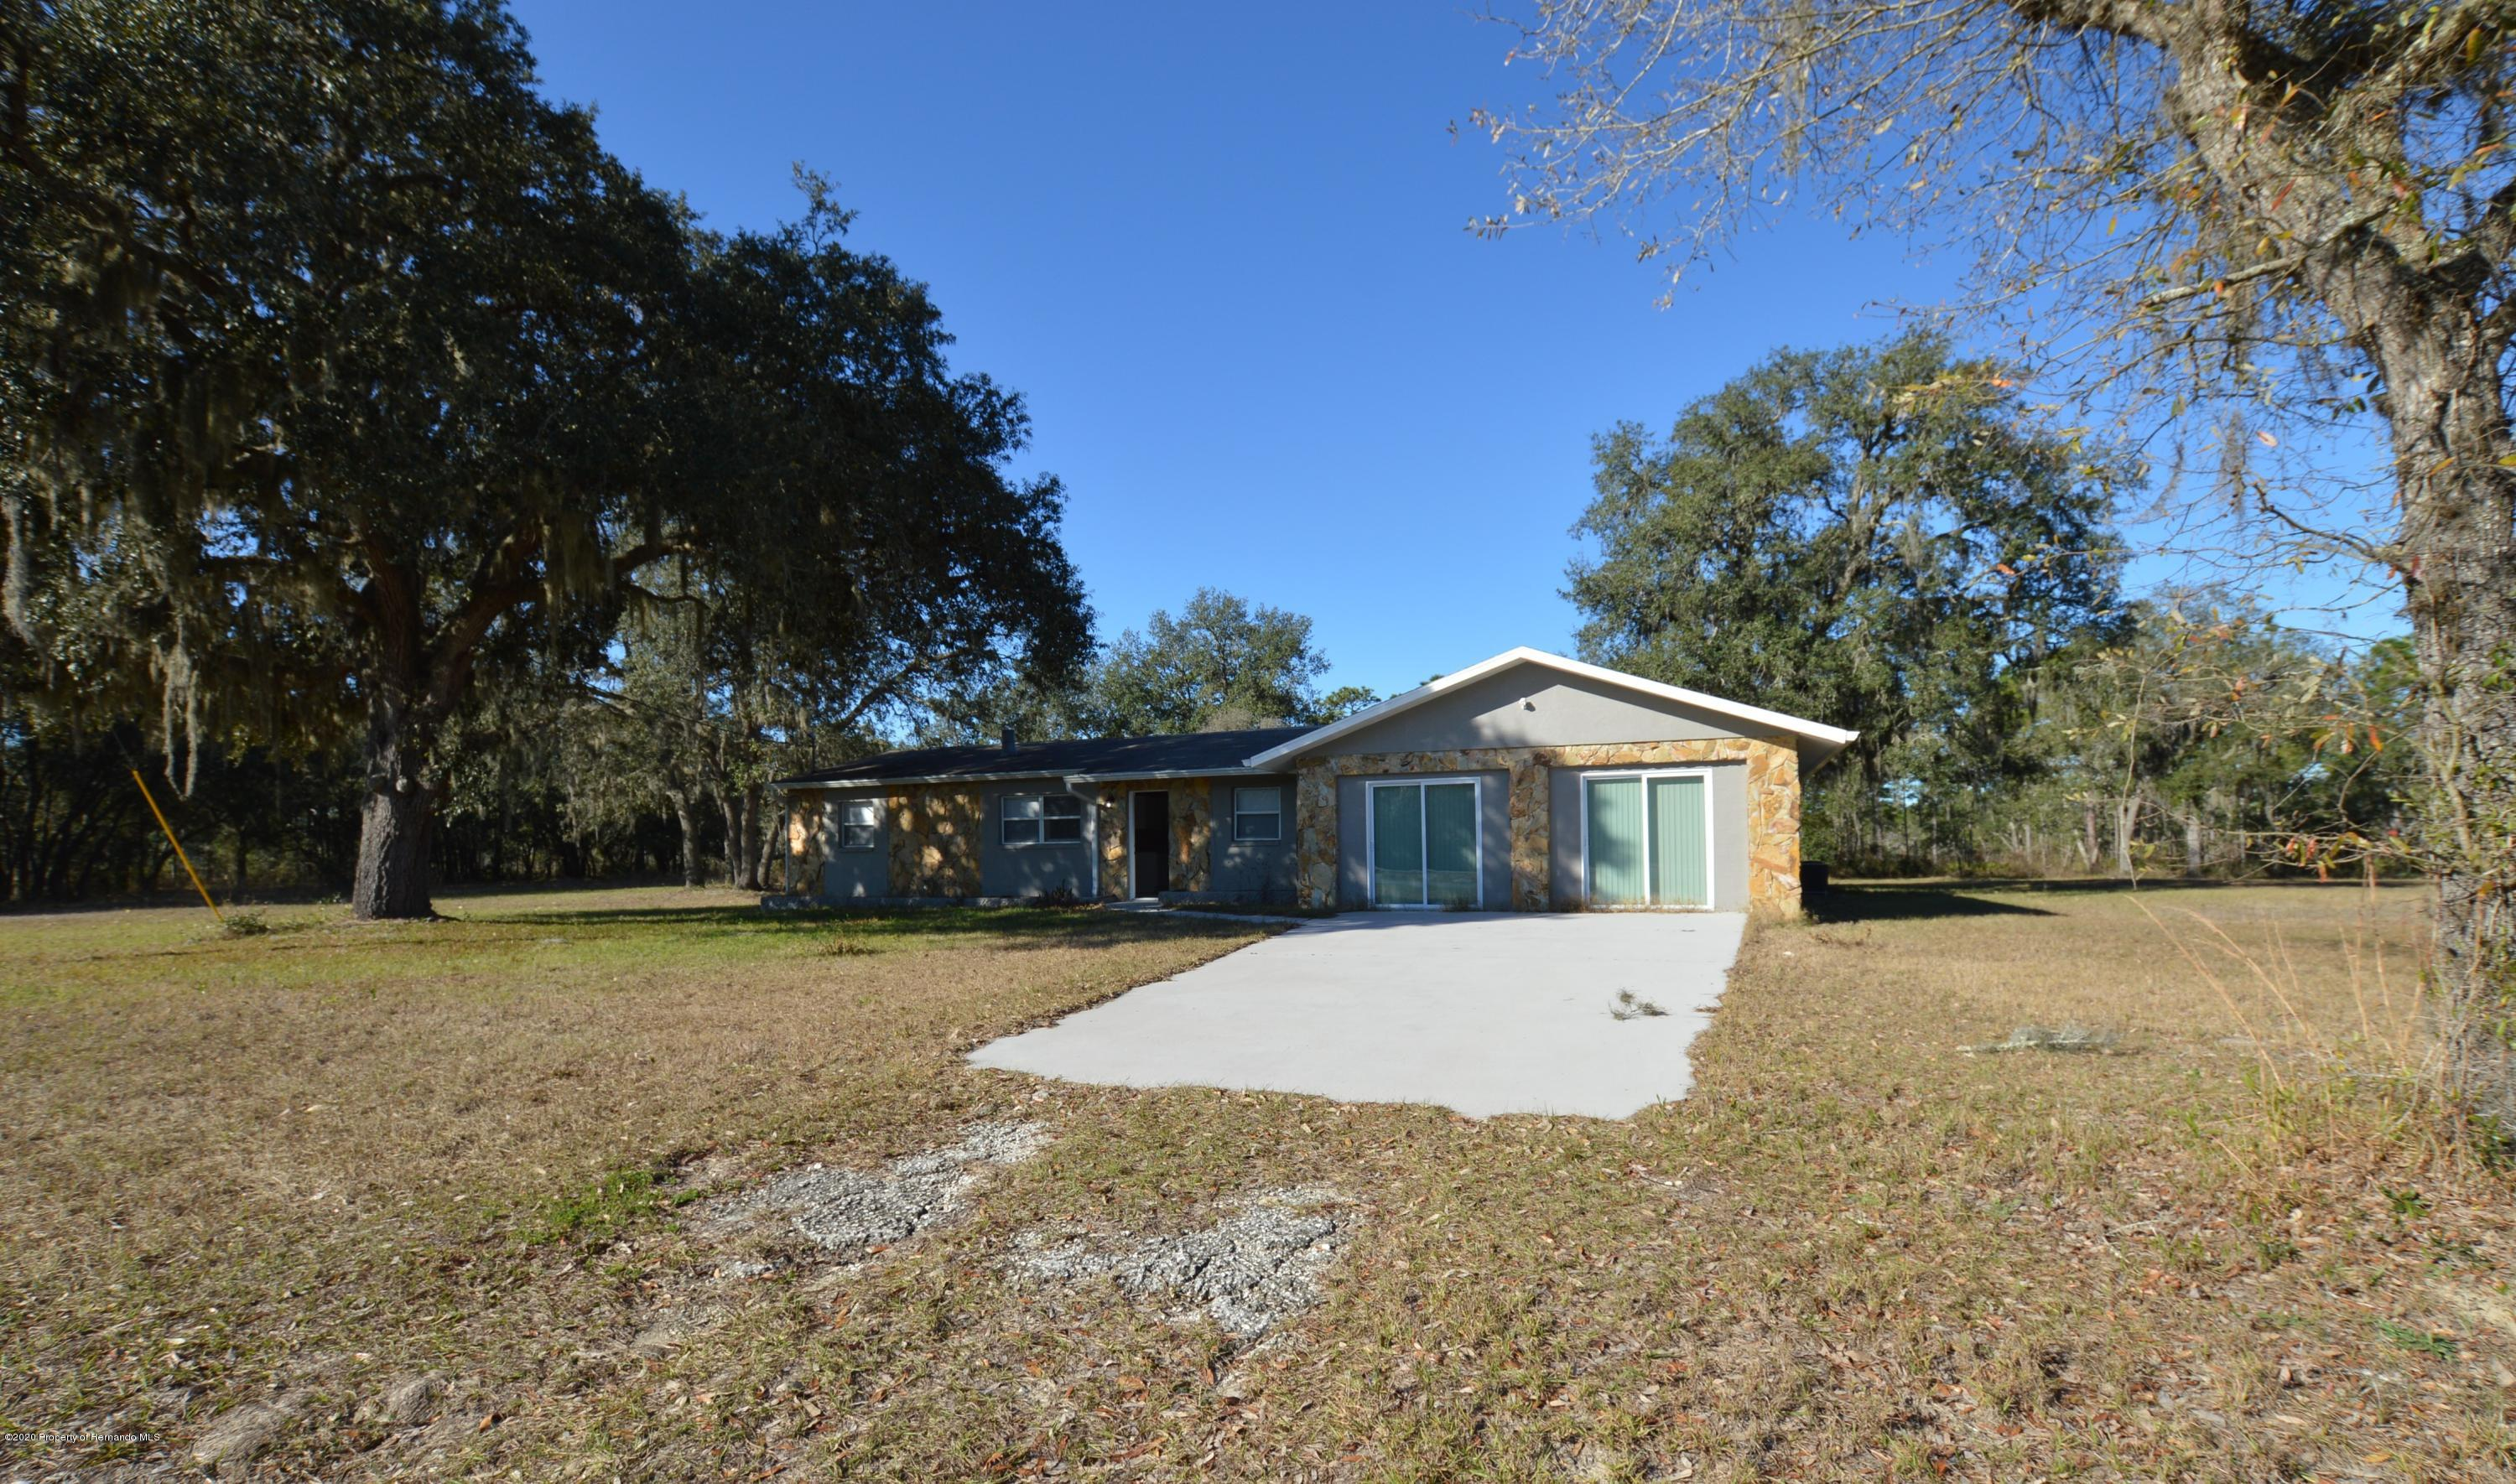 Details for 15451 Commercial, Weeki Wachee, FL 34614